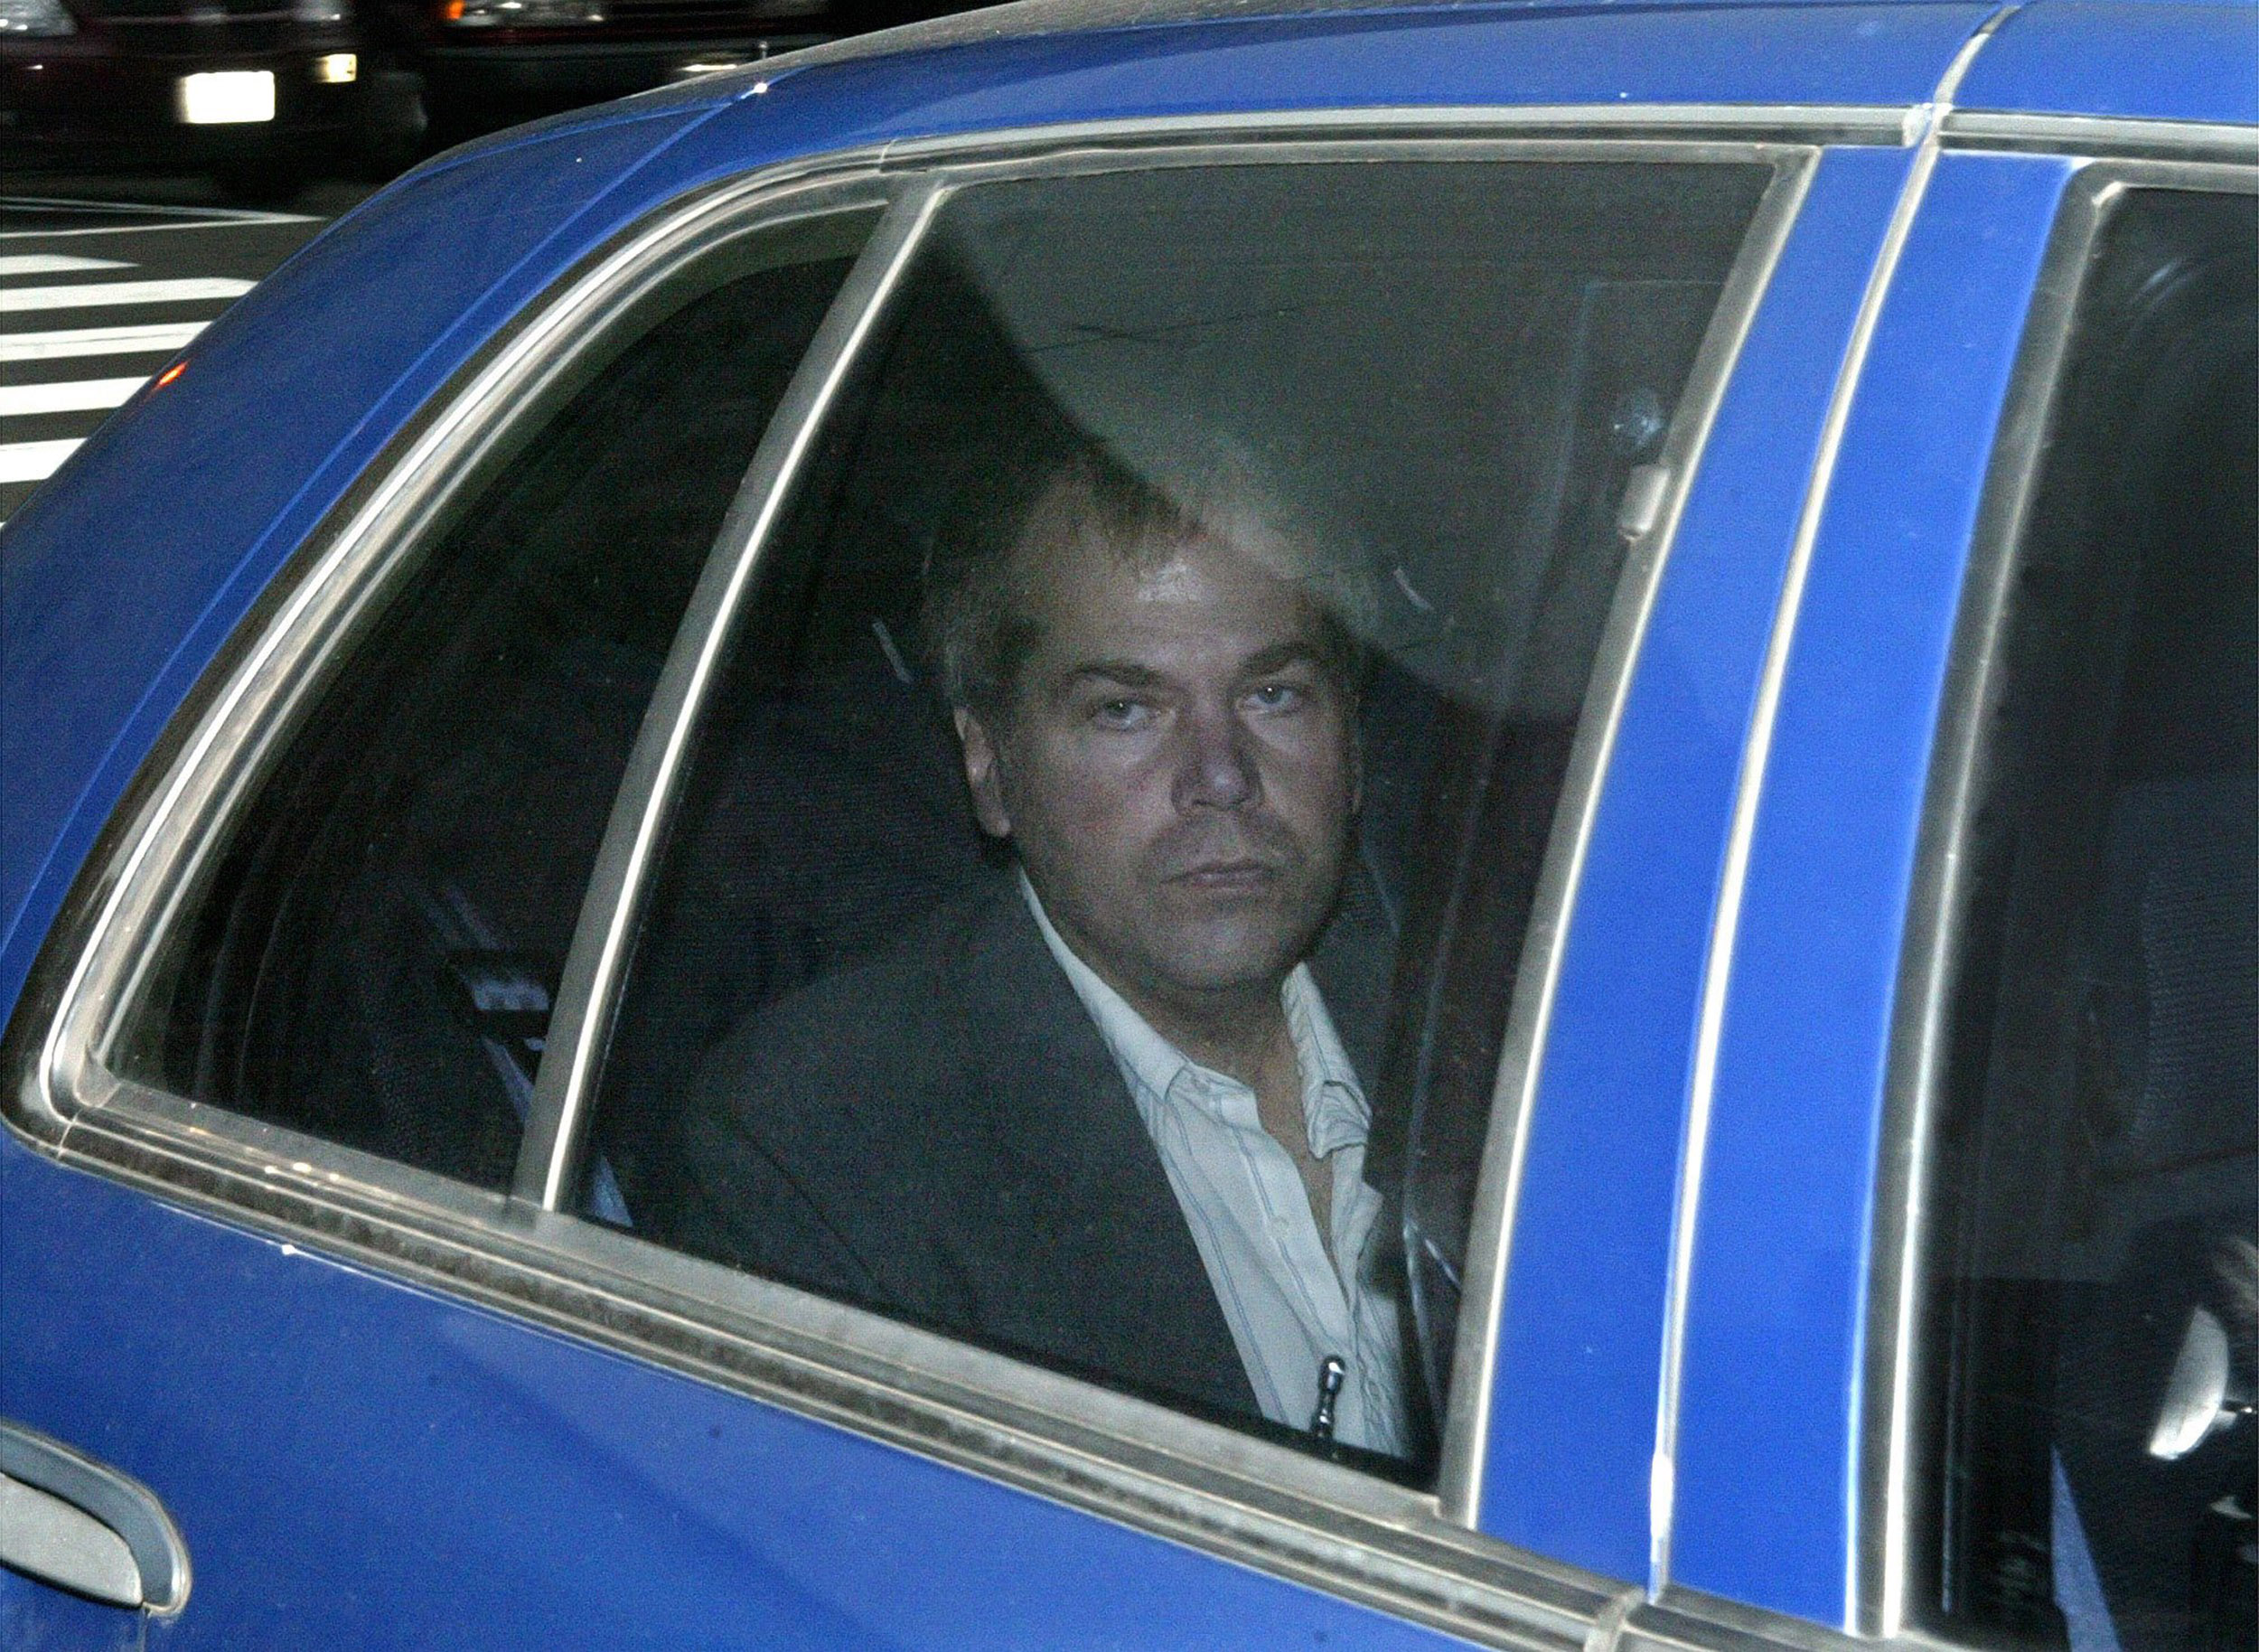 Man who tried to assassinate Reagan to be freed from oversight